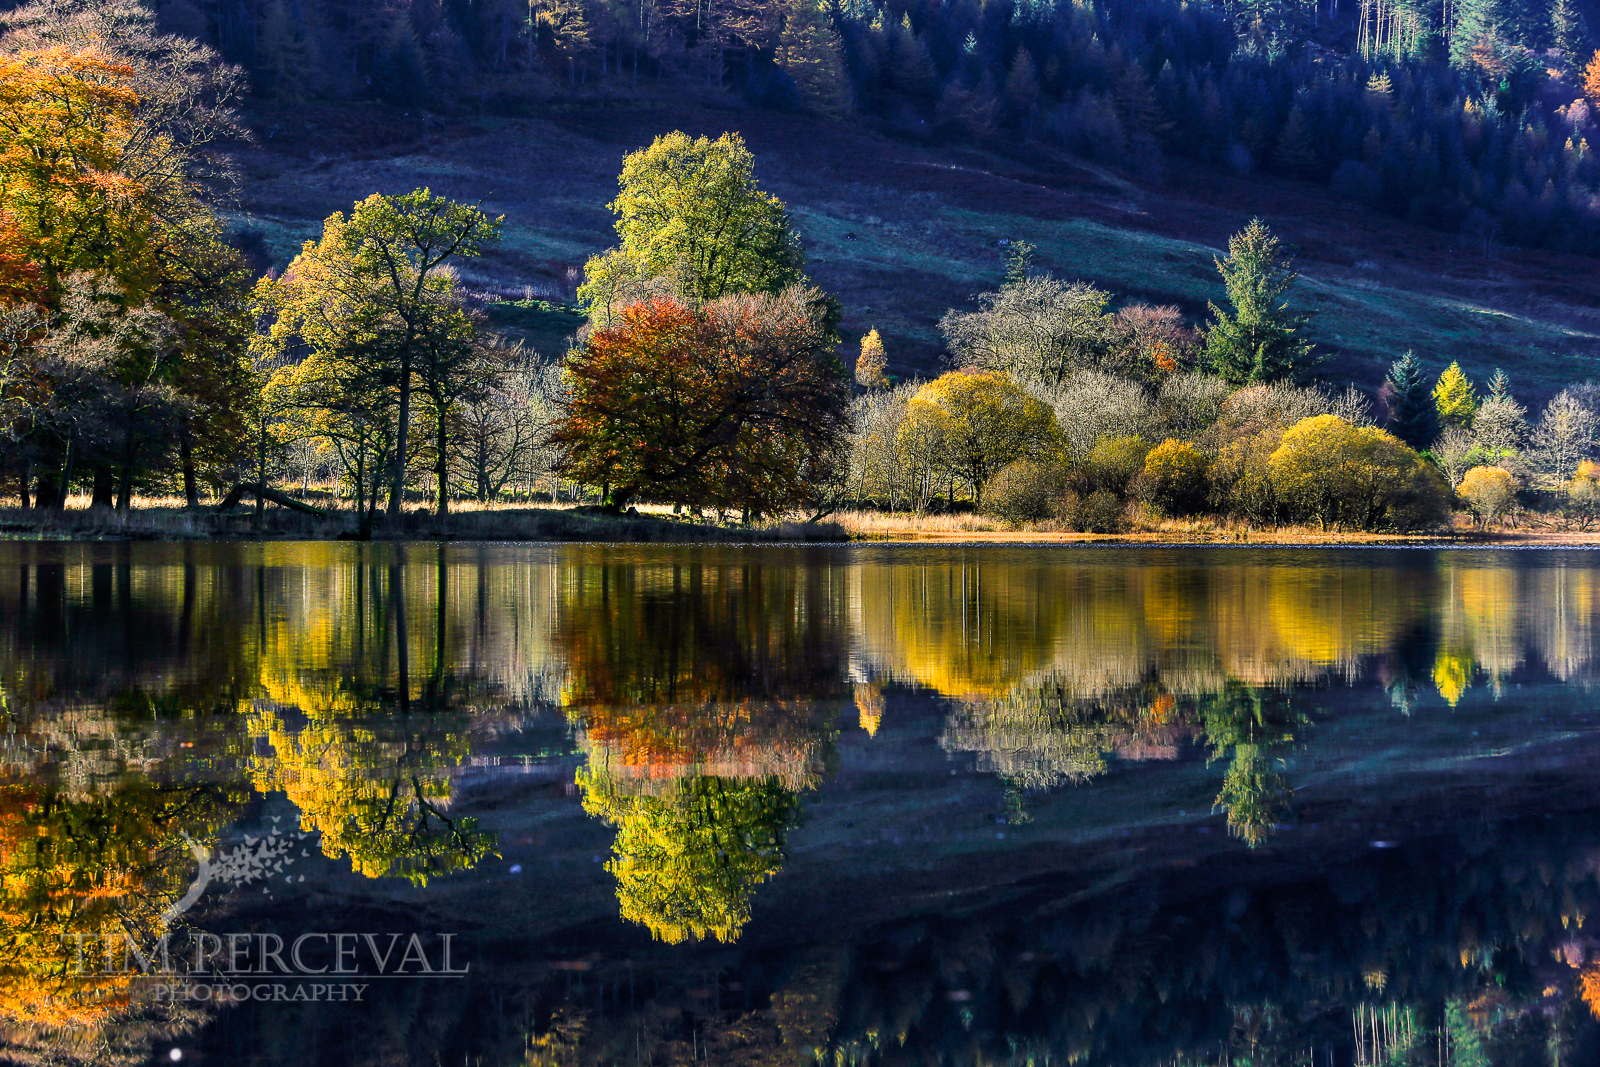 Loch Lubnaig Autumn Reflections at sunset